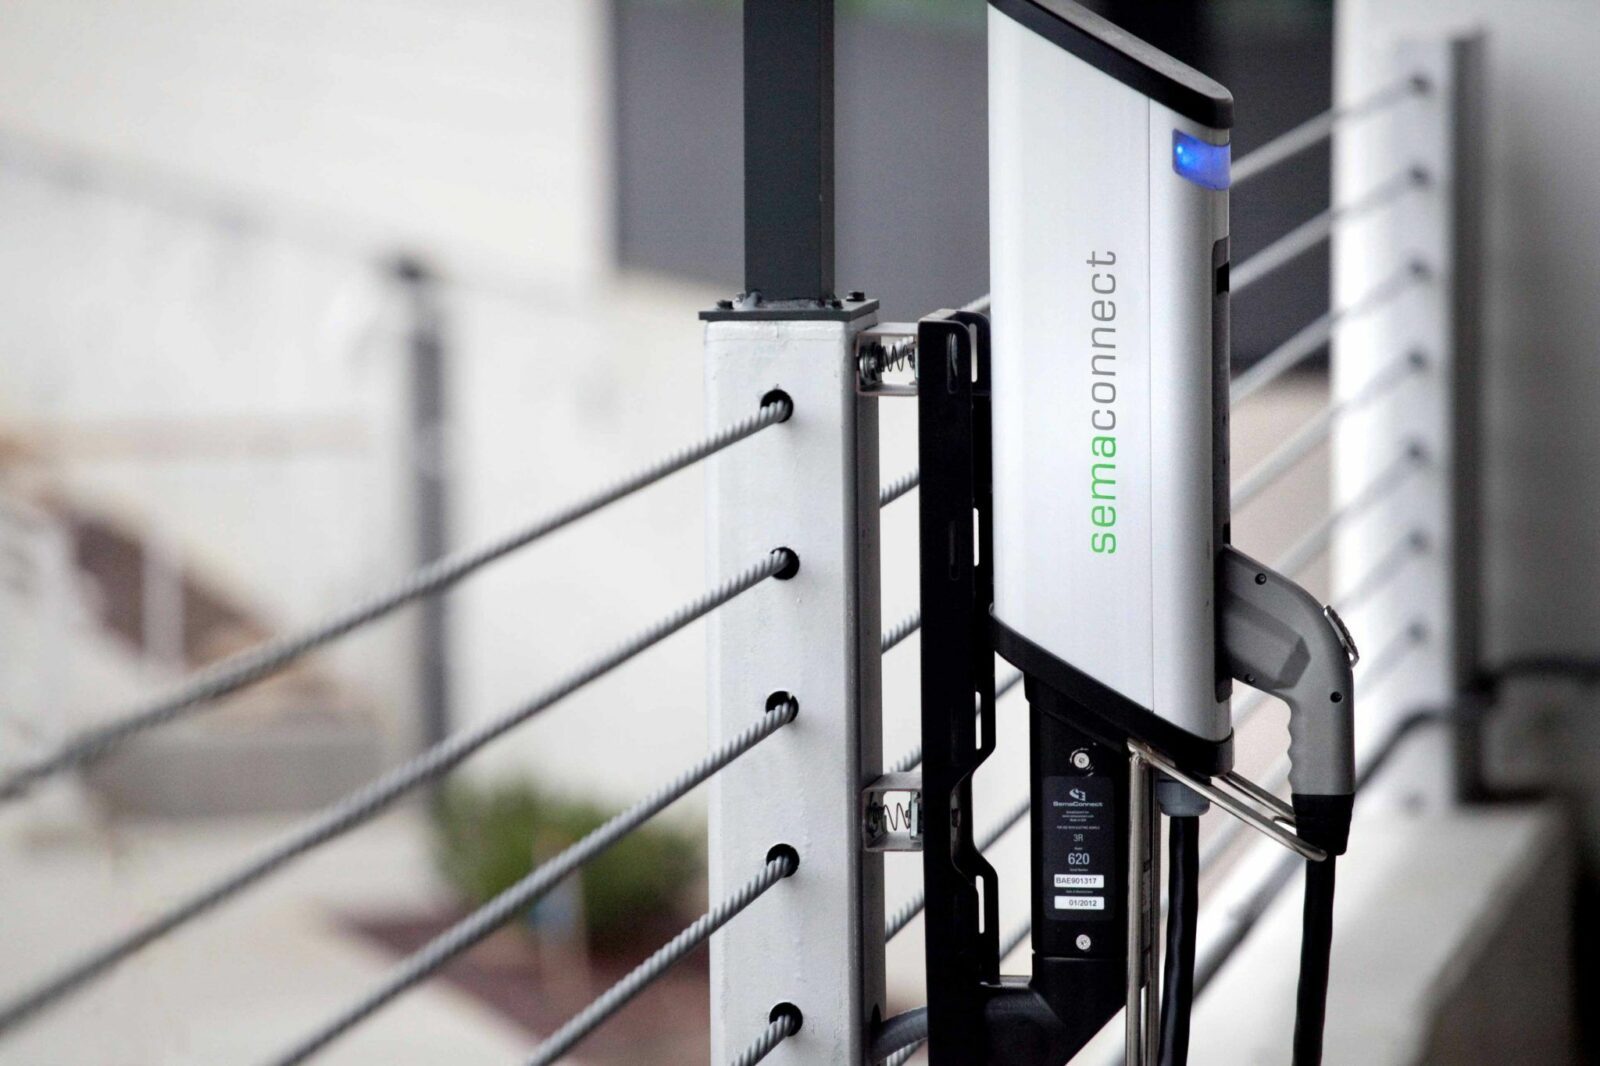 SemaConnect wall-mounted smart EV charging station